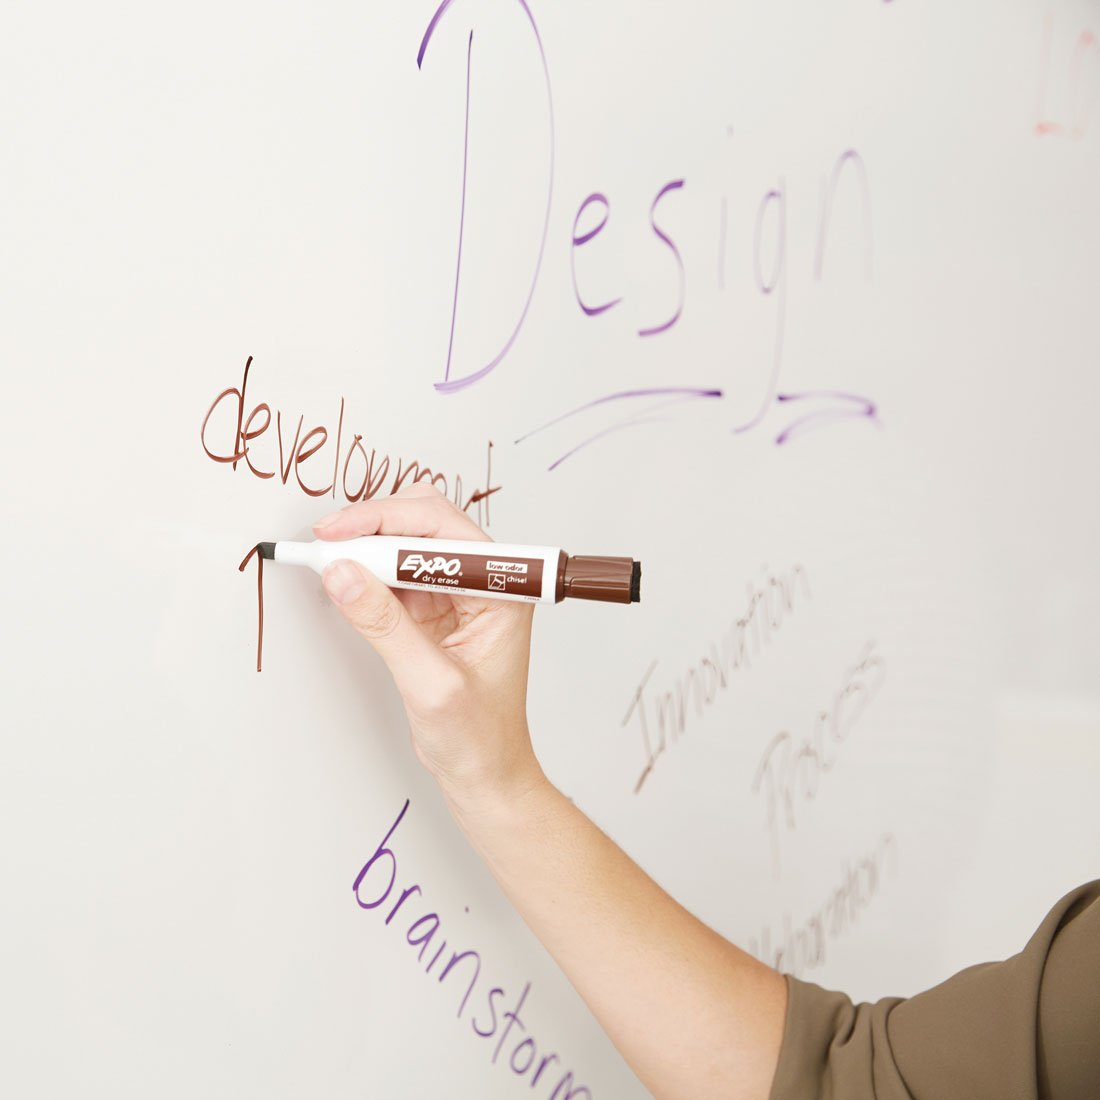 writing-on-whiteboard-with-brown-expo-marker.jpg